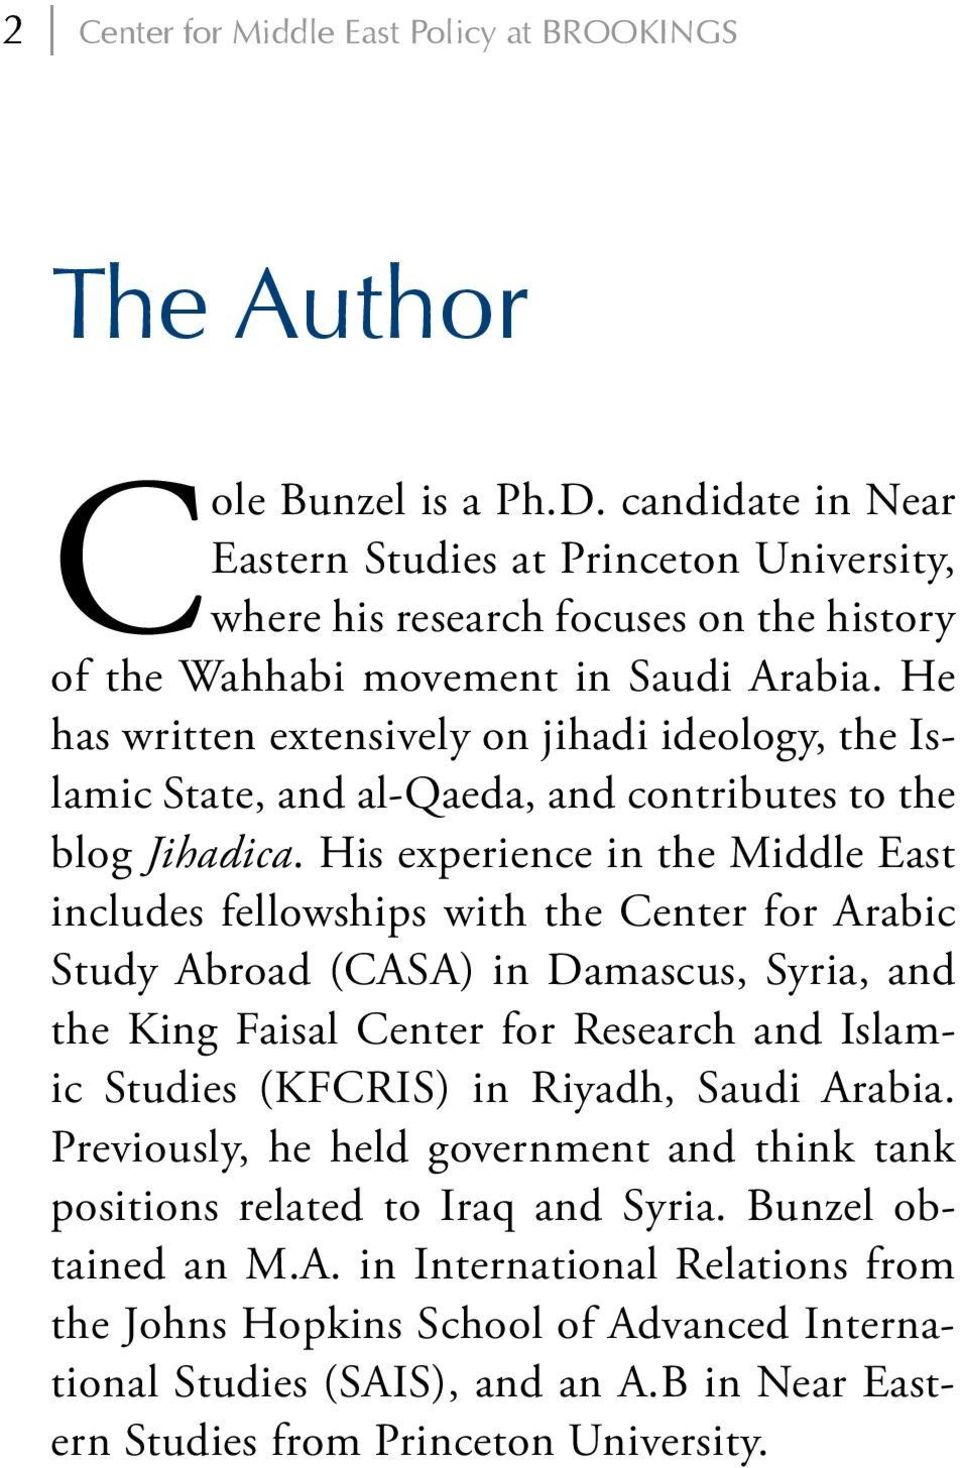 He has written extensively on jihadi ideology, the Islamic State, and al-qaeda, and contributes to the blog Jihadica.